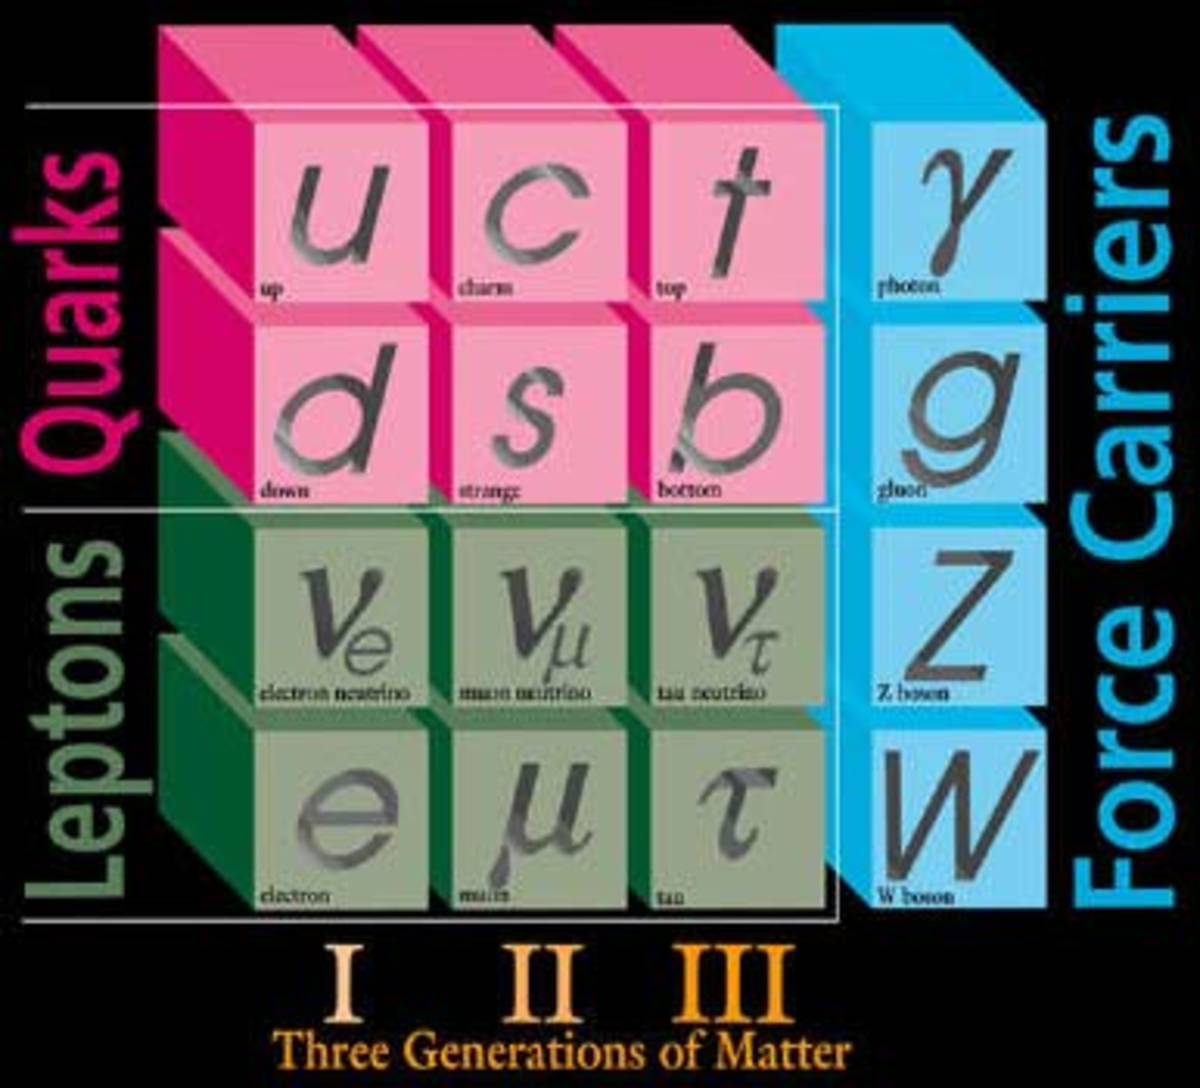 The 3 generations of matter: leptons, quarks, and force carriers (gauge bosons).